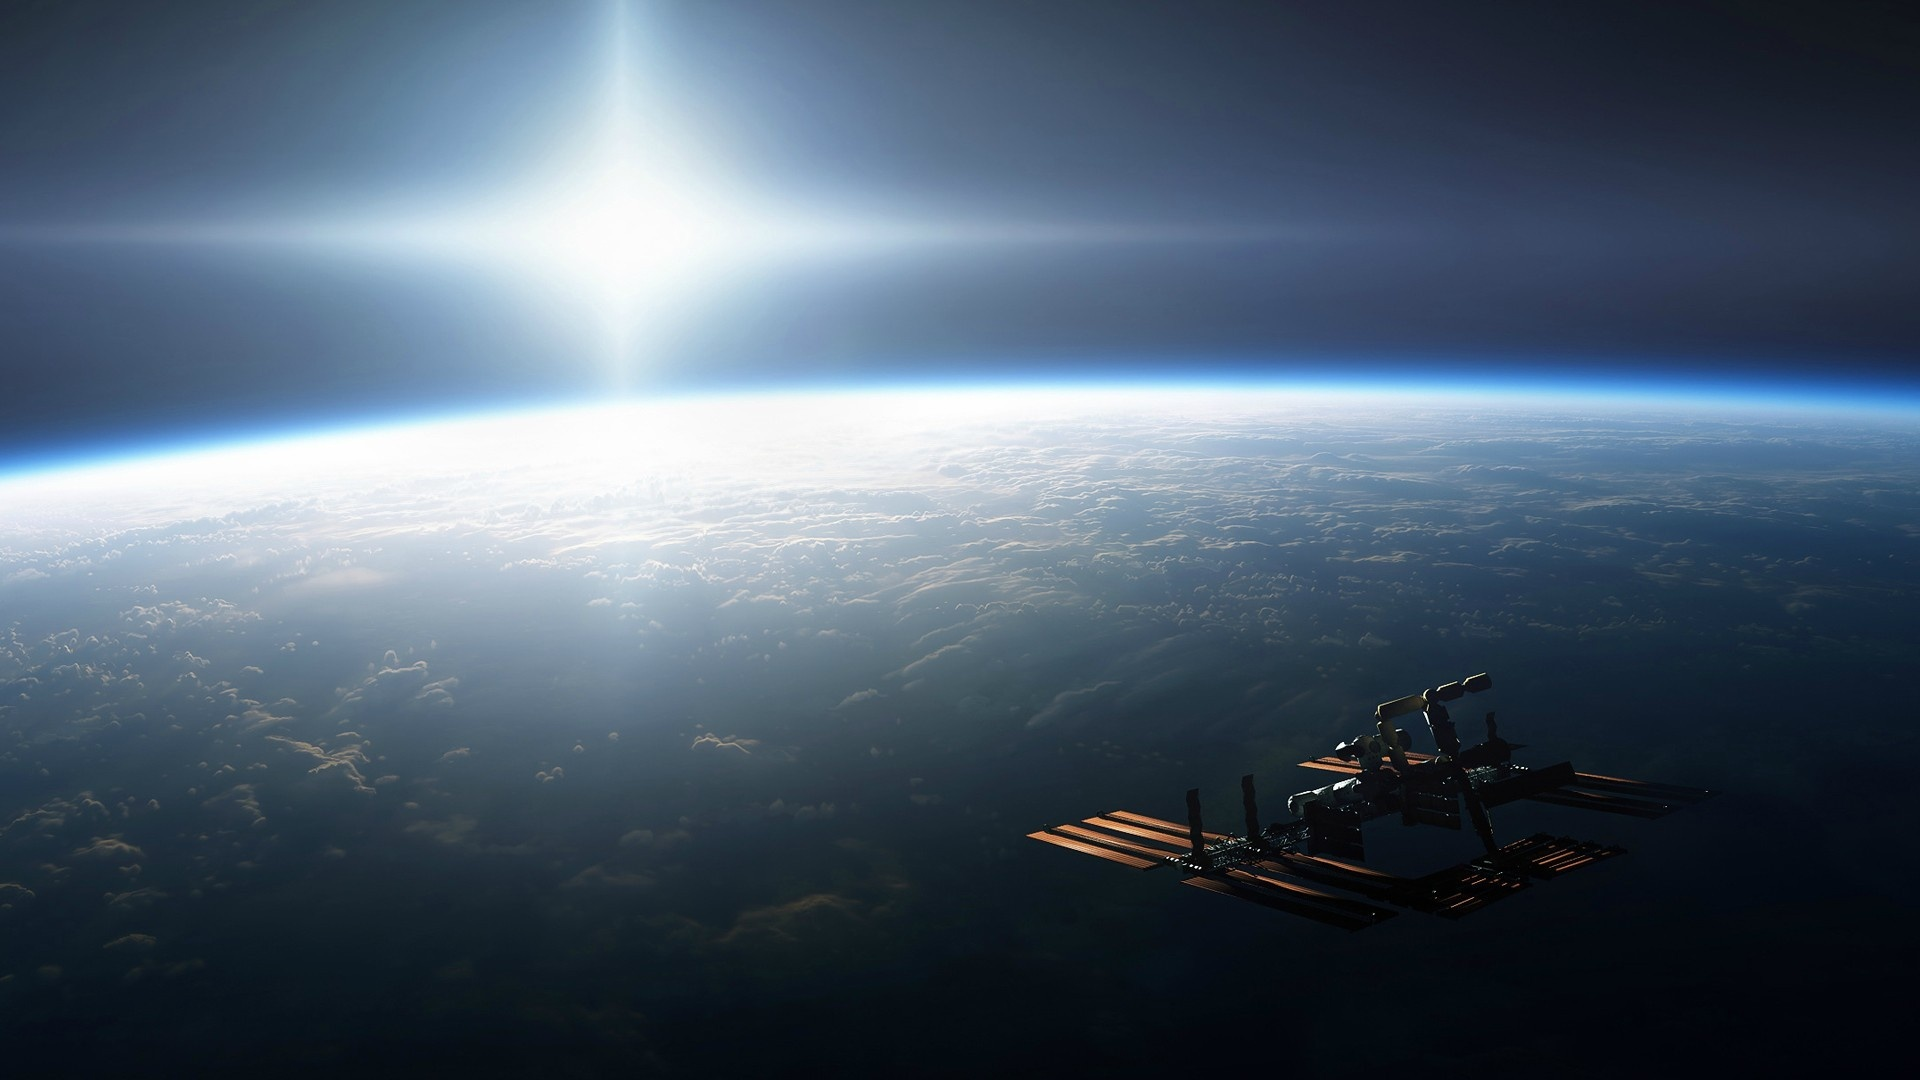 Space Station computer wallpaper